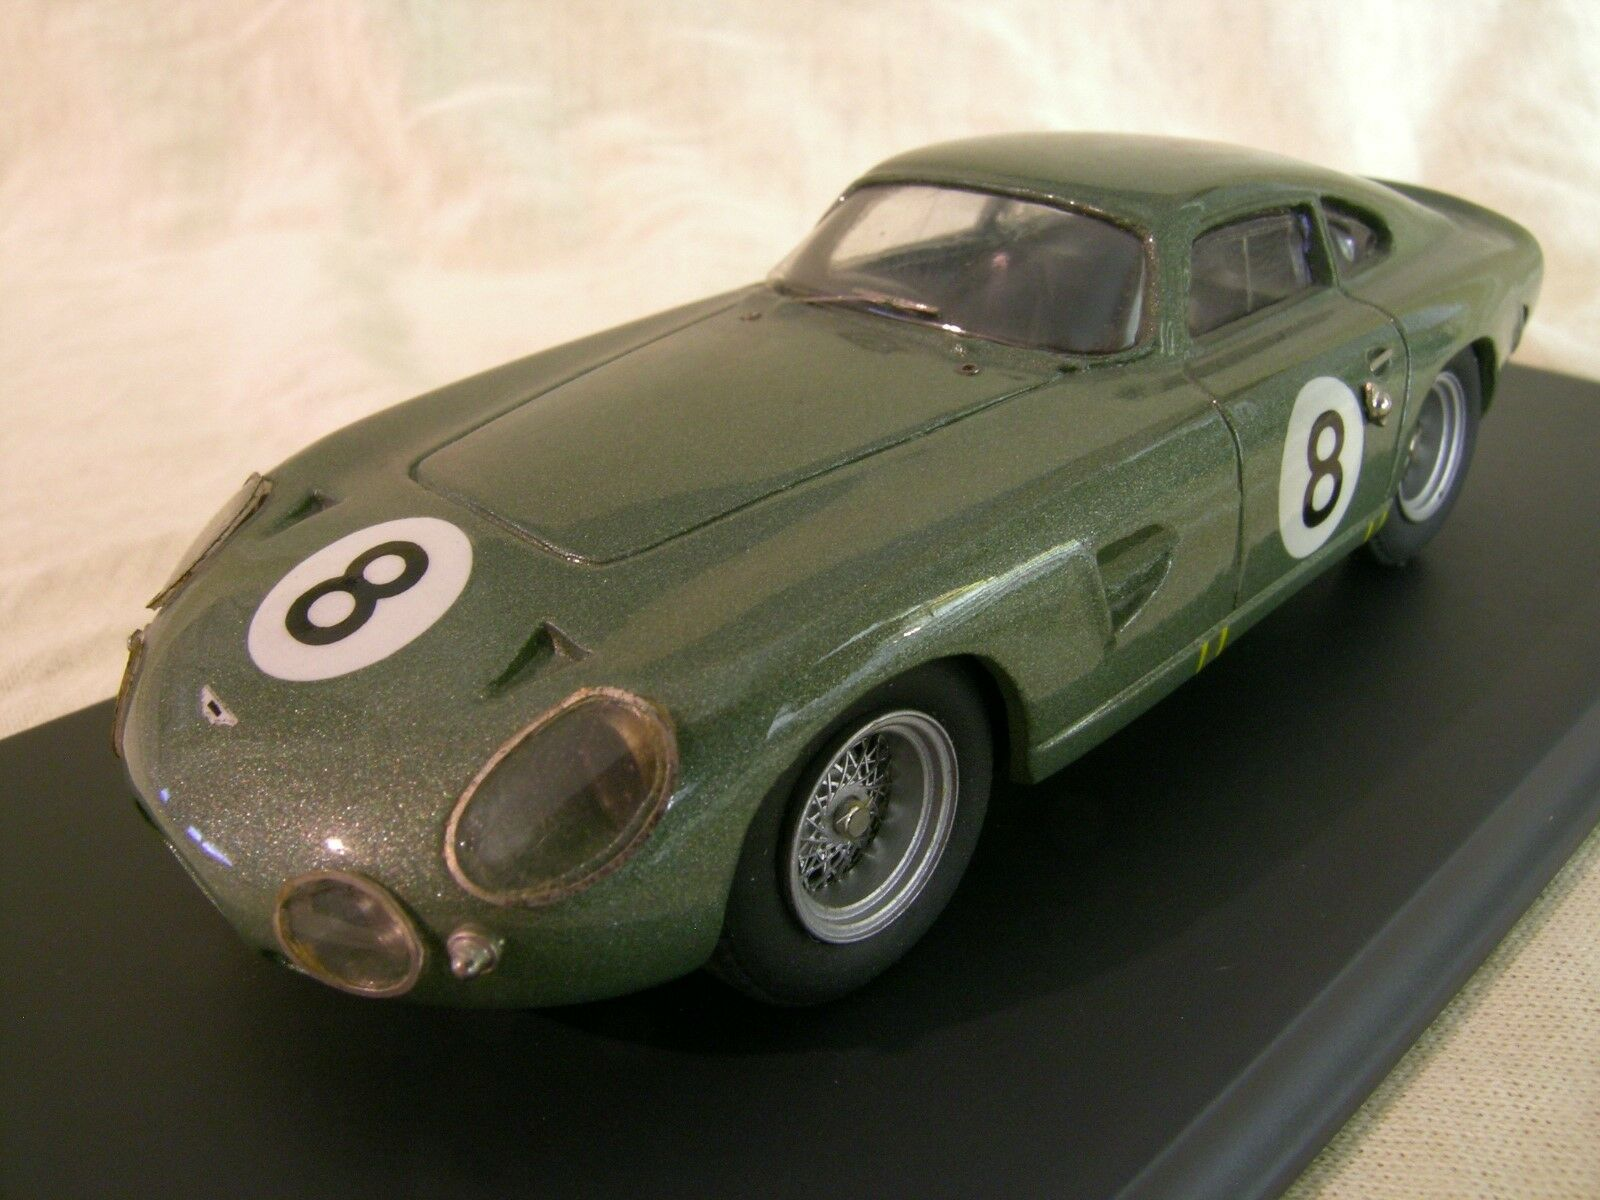 SMTS-MODELS RL44 ASTON MARTIN PROJECT 214 1963 8 vert + BOX SCALE 1 43